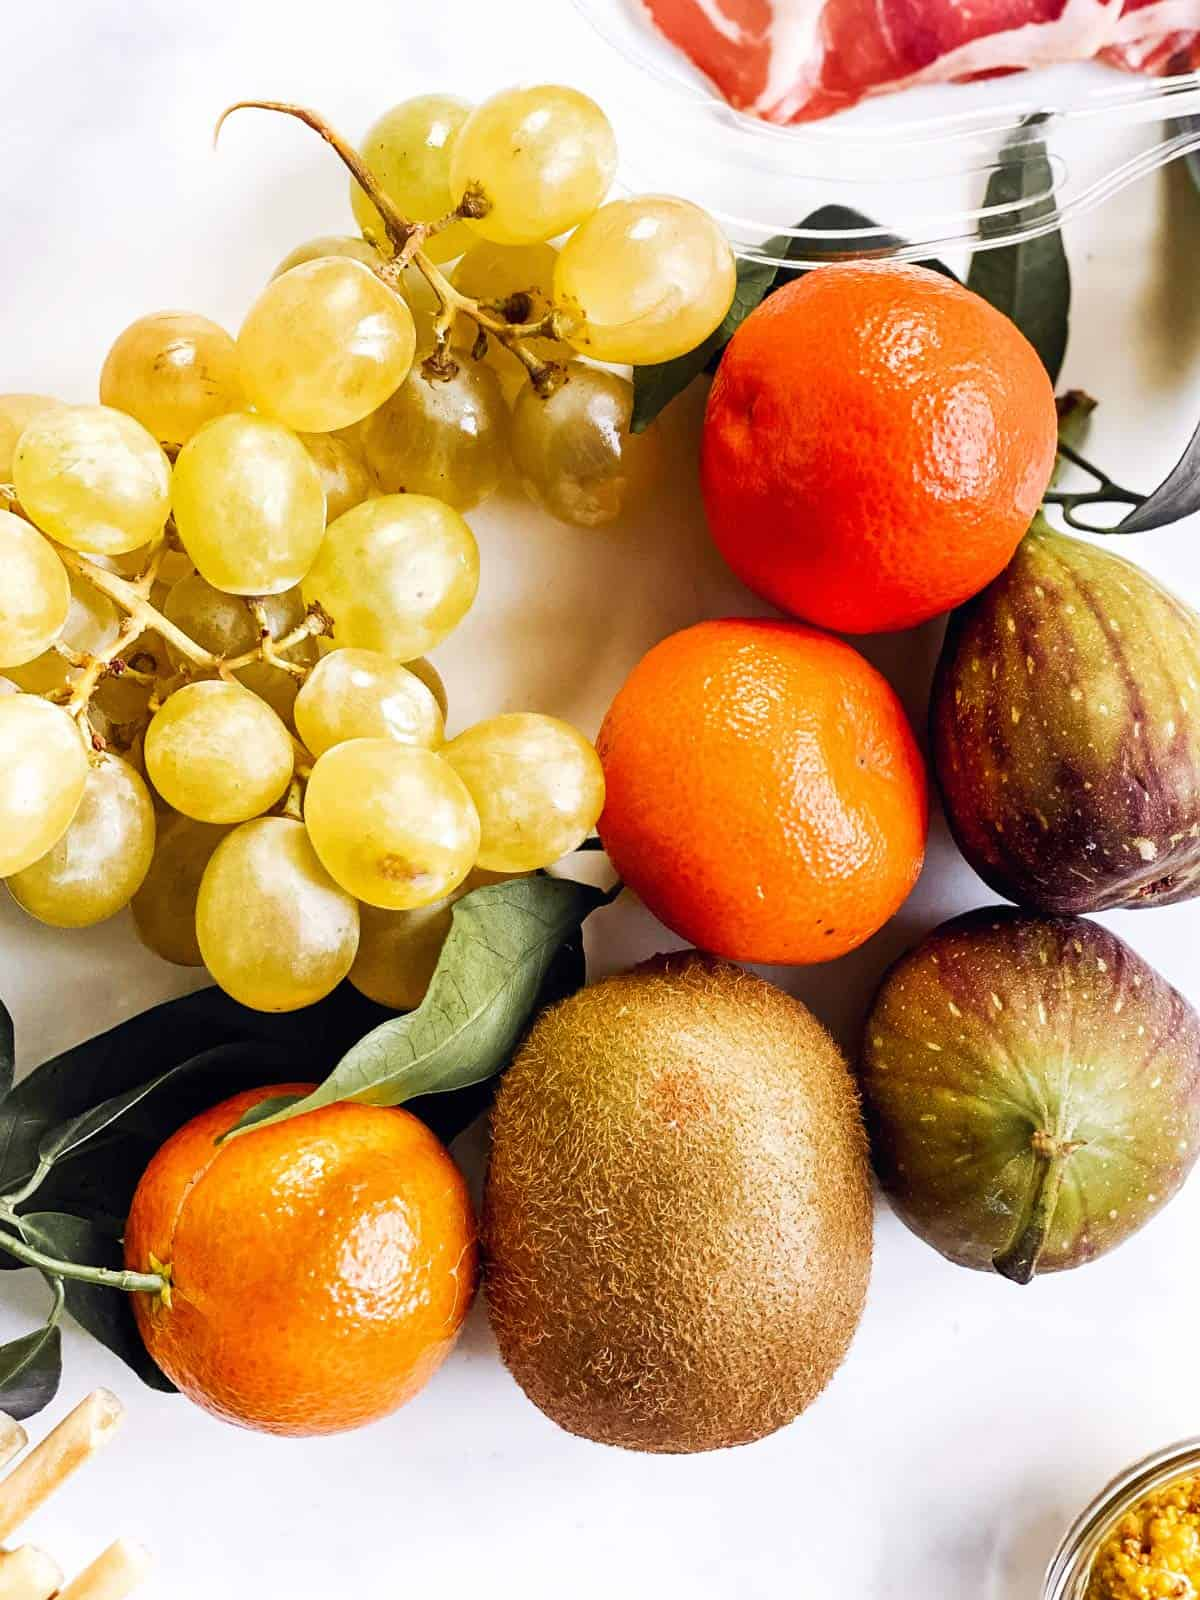 several types of fruit on bright white surface